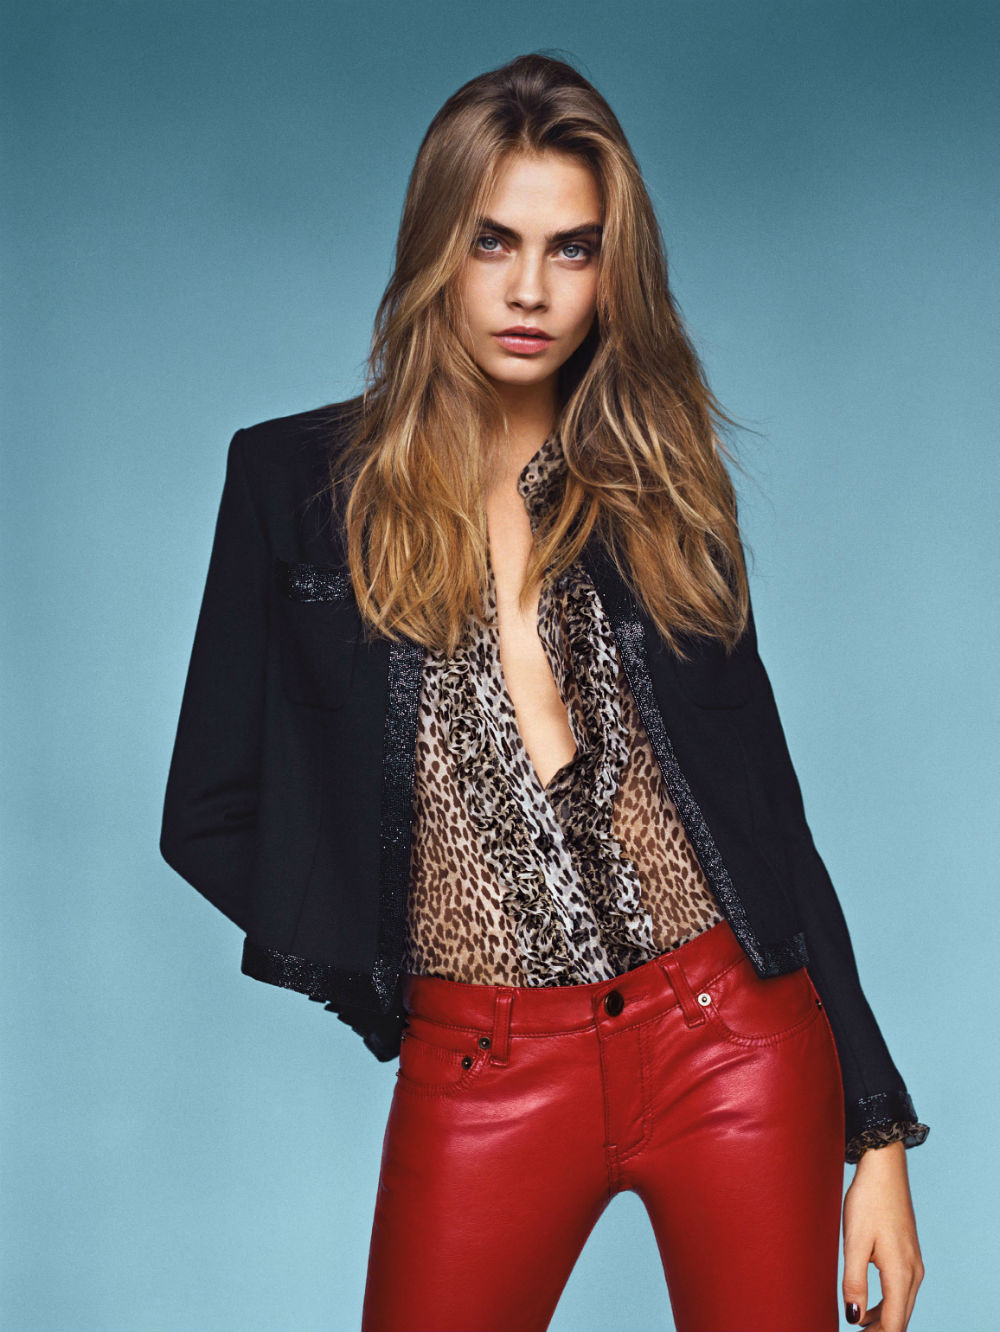 cara-delevingne-by-alasdair-mclellan-for-vogue-uk-january-2014-2